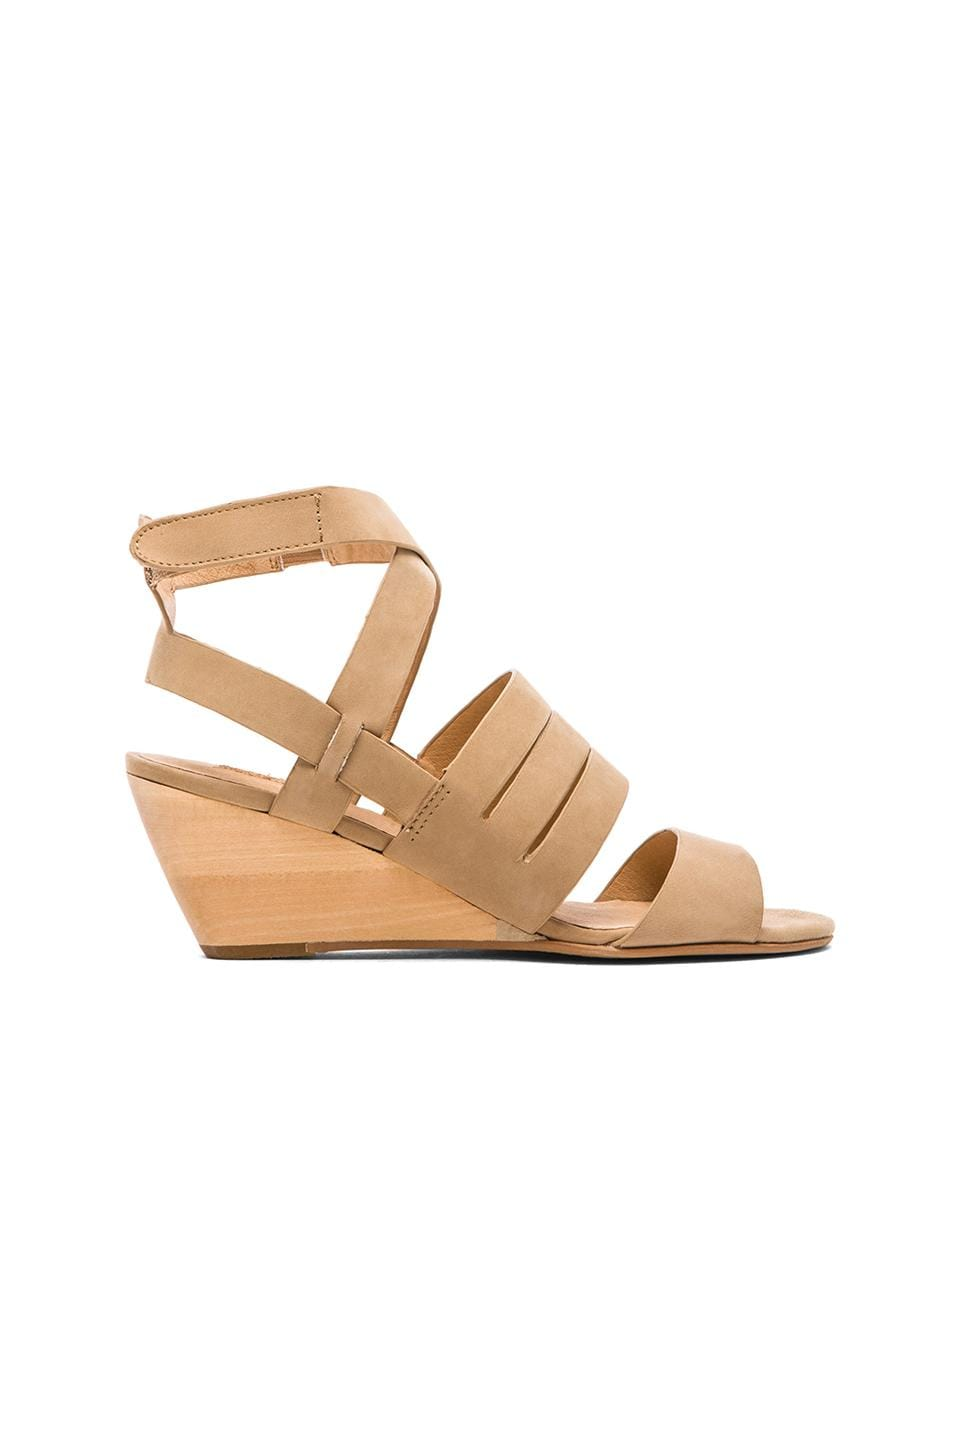 Matiko Ursina Wedge in Tan